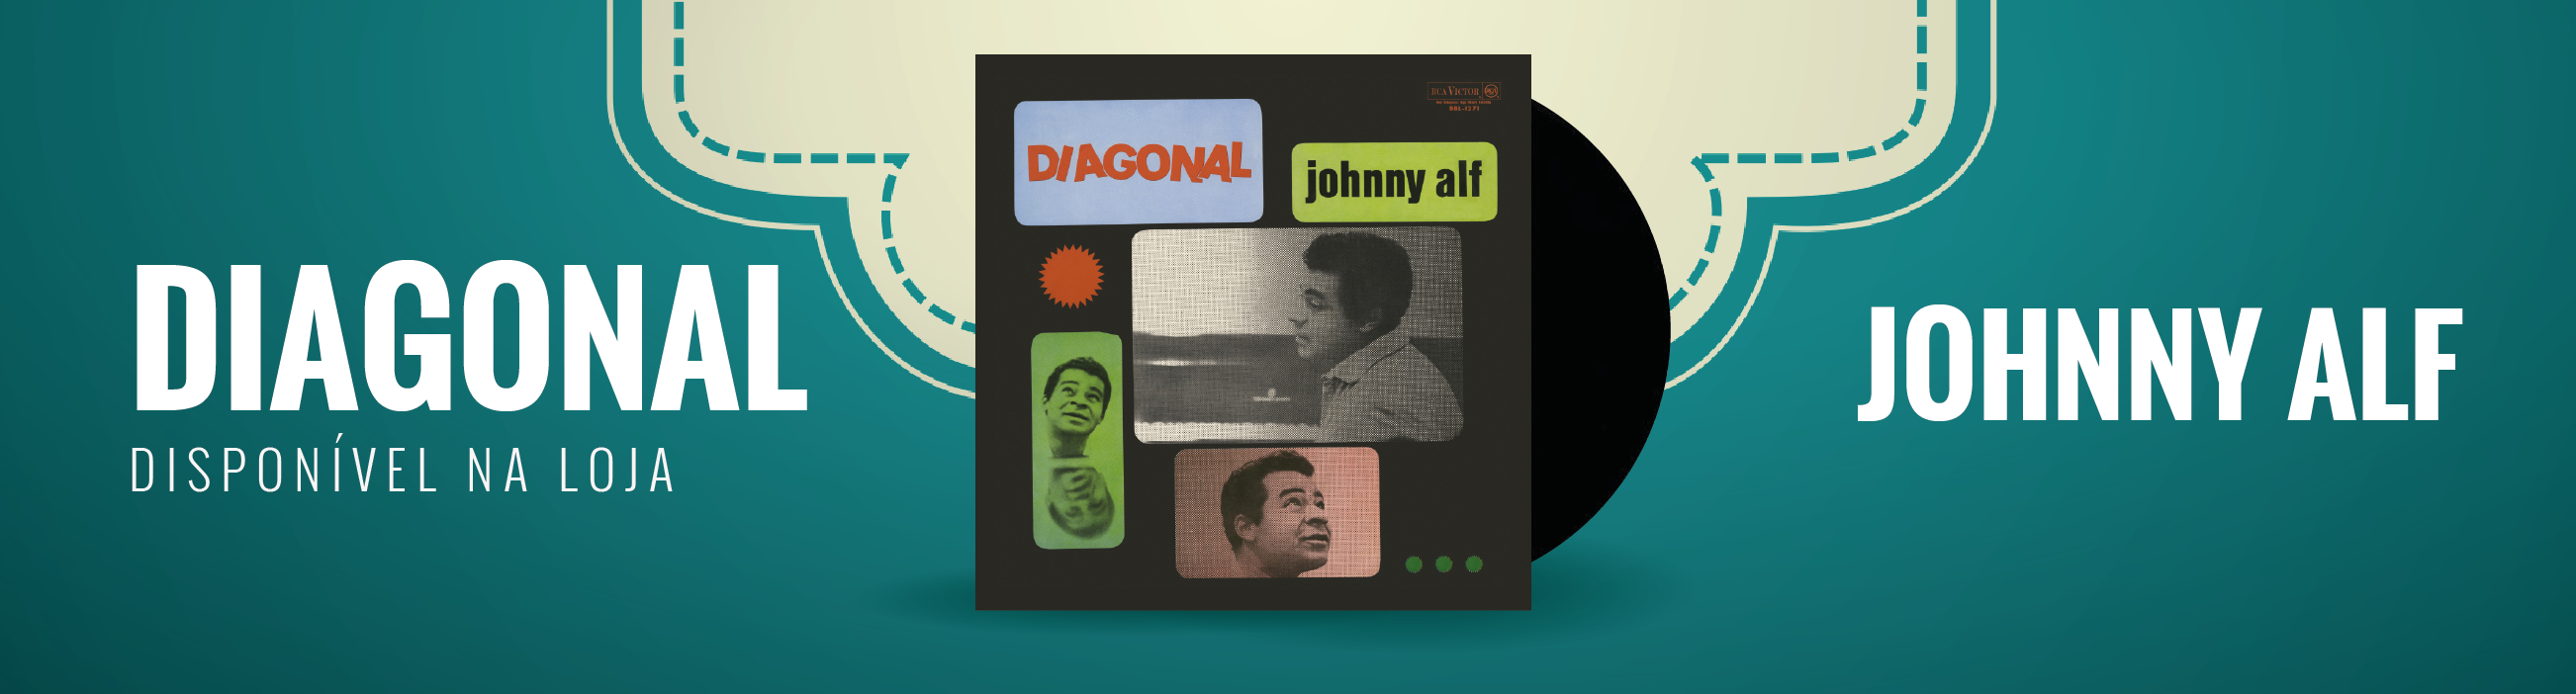 Lps Johnny Alf Diagonal